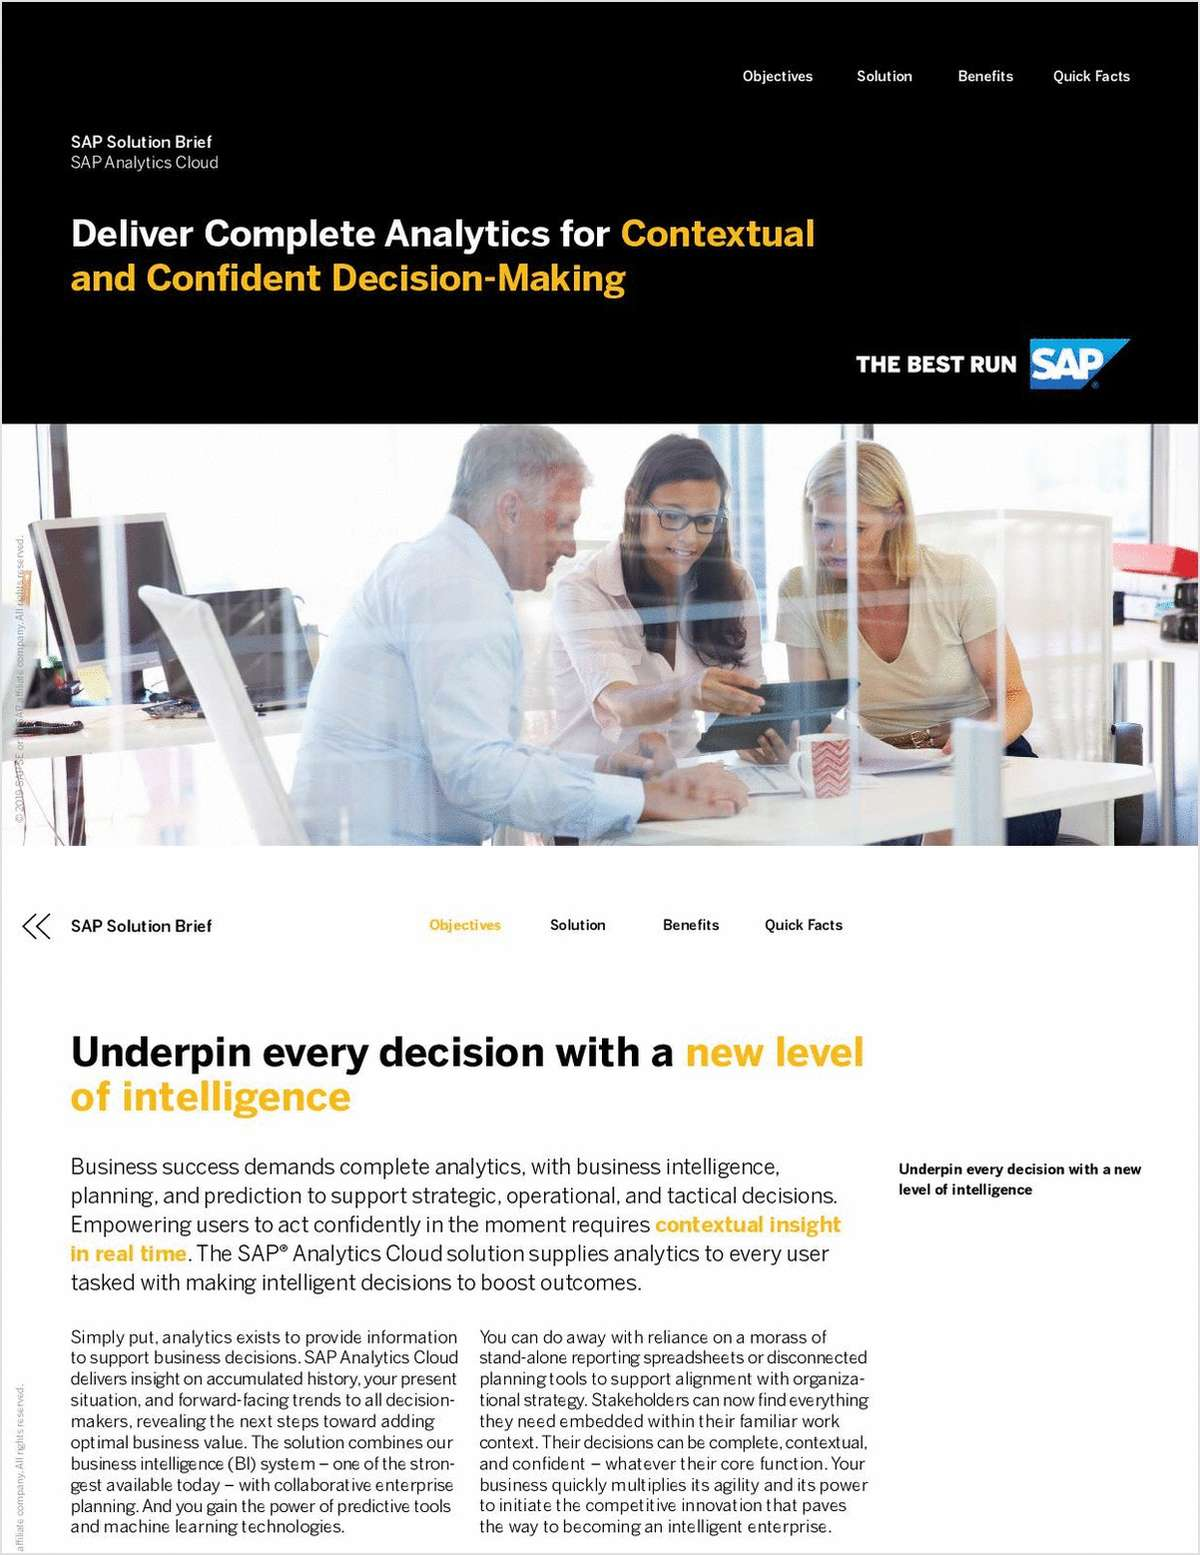 Deliver Complete Analytics for Contextual and Confident Decision-Making